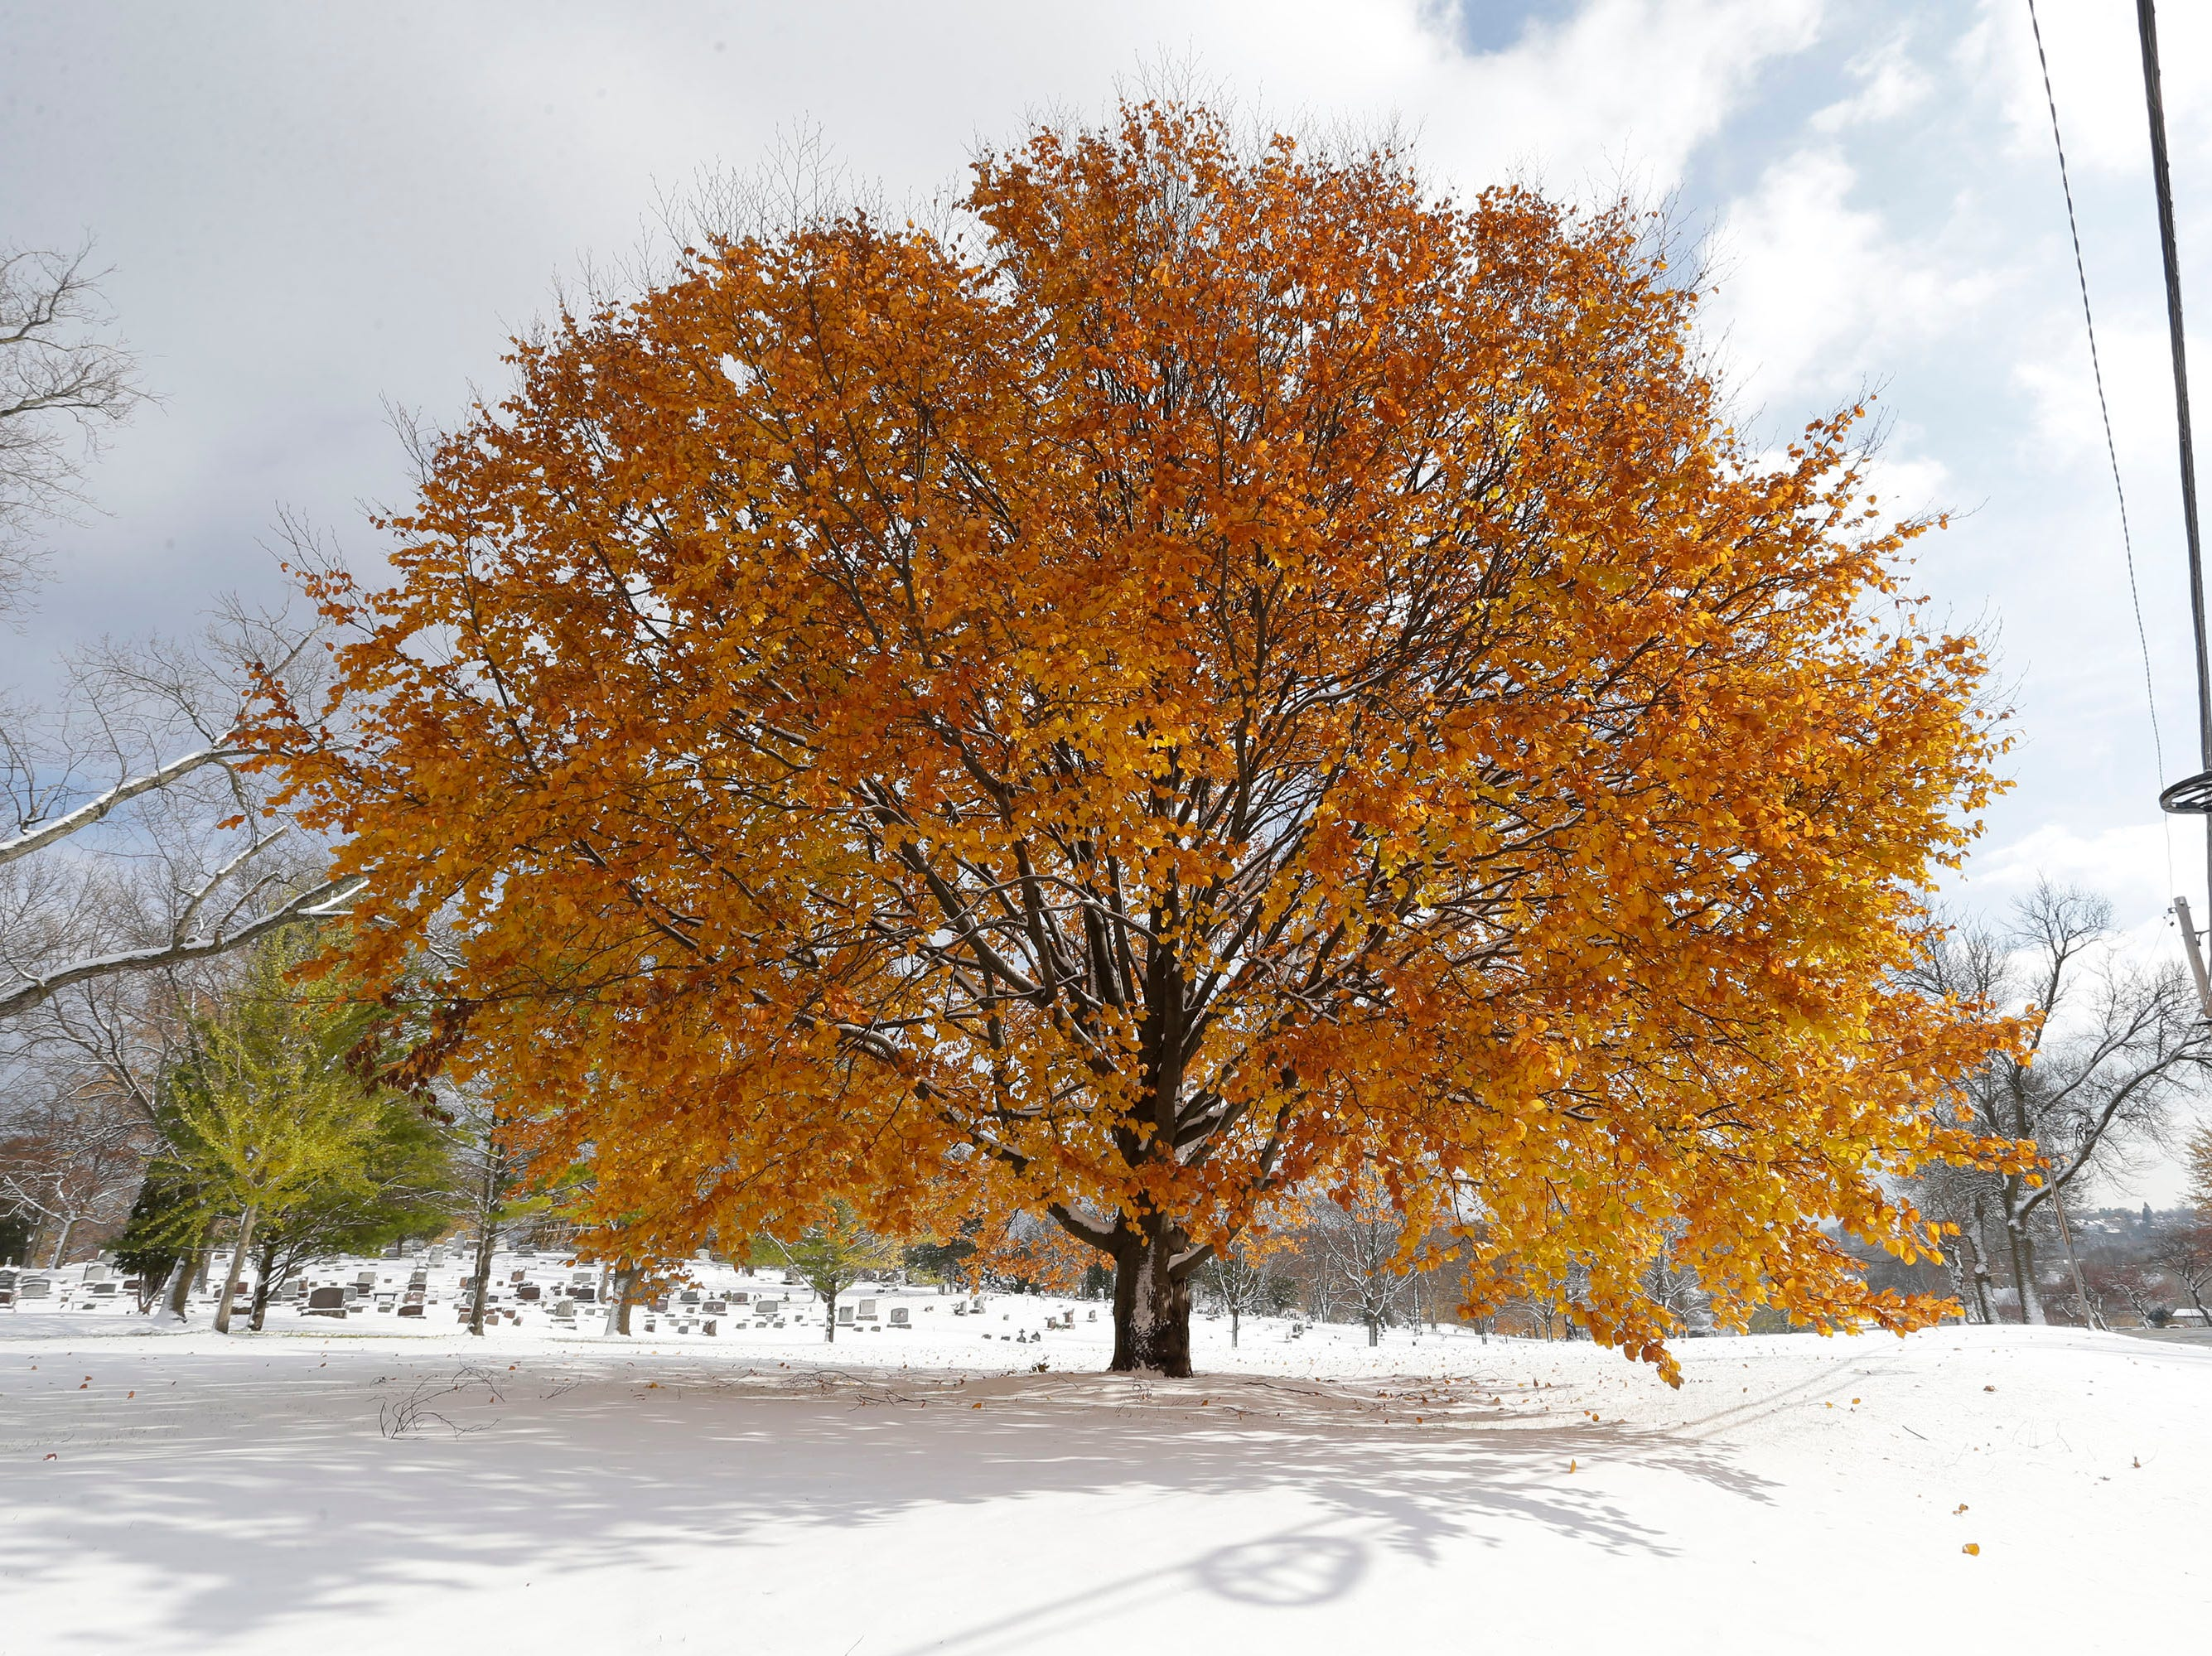 Leaves in full color along Evans contrast with the freshly fallen snow, Friday, November 9, 2018, in Sheboygan, Wis.